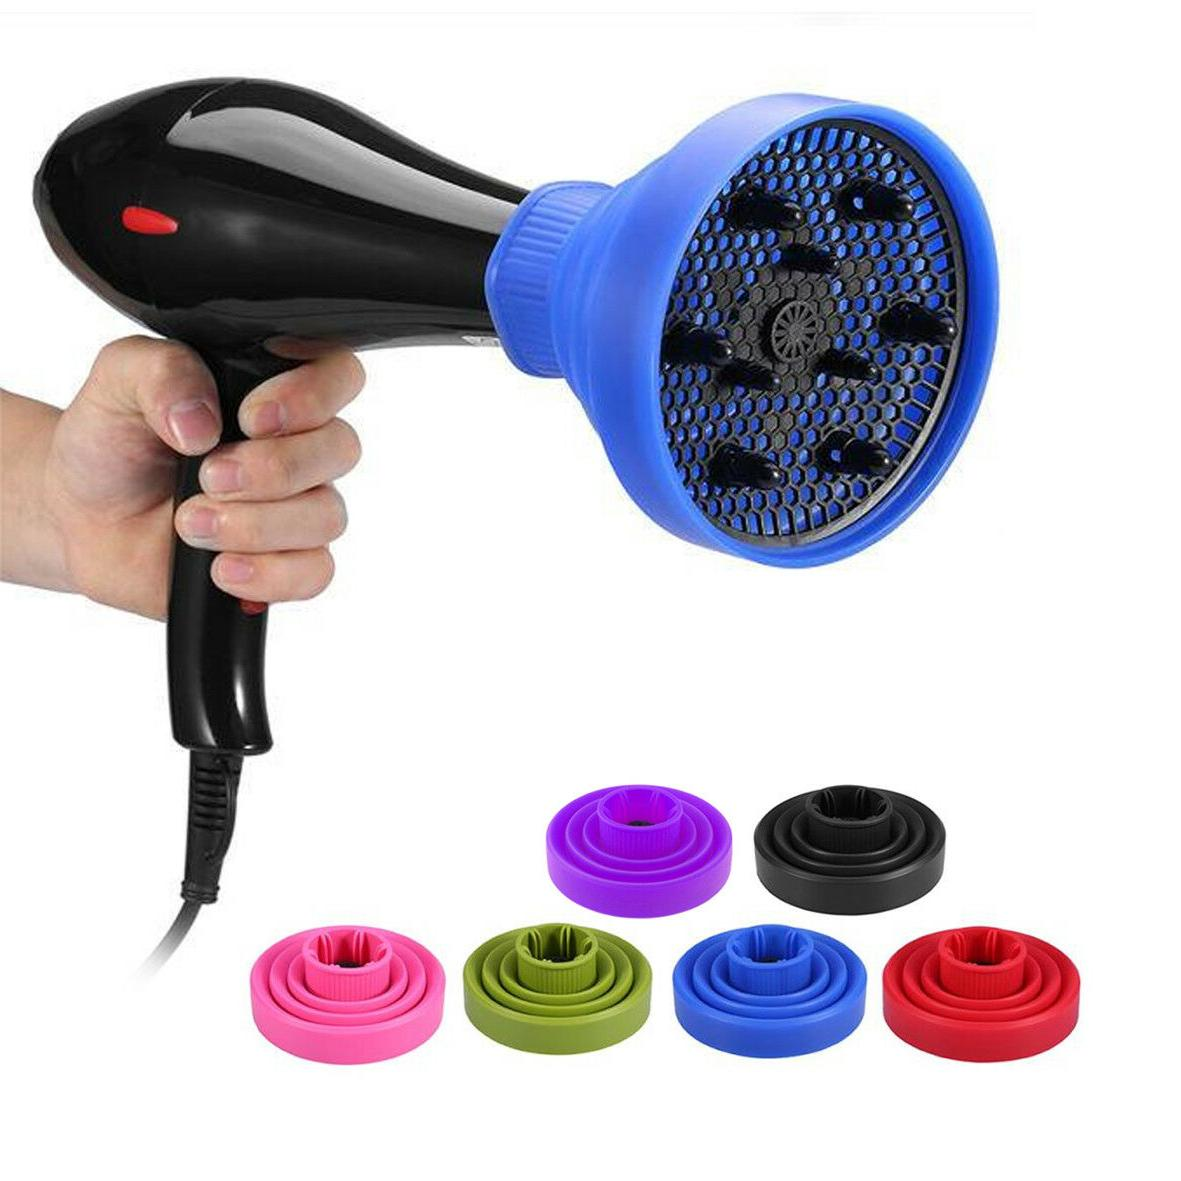 SSS Silicone Universal Travel Diffuser for Most Hair Dryers